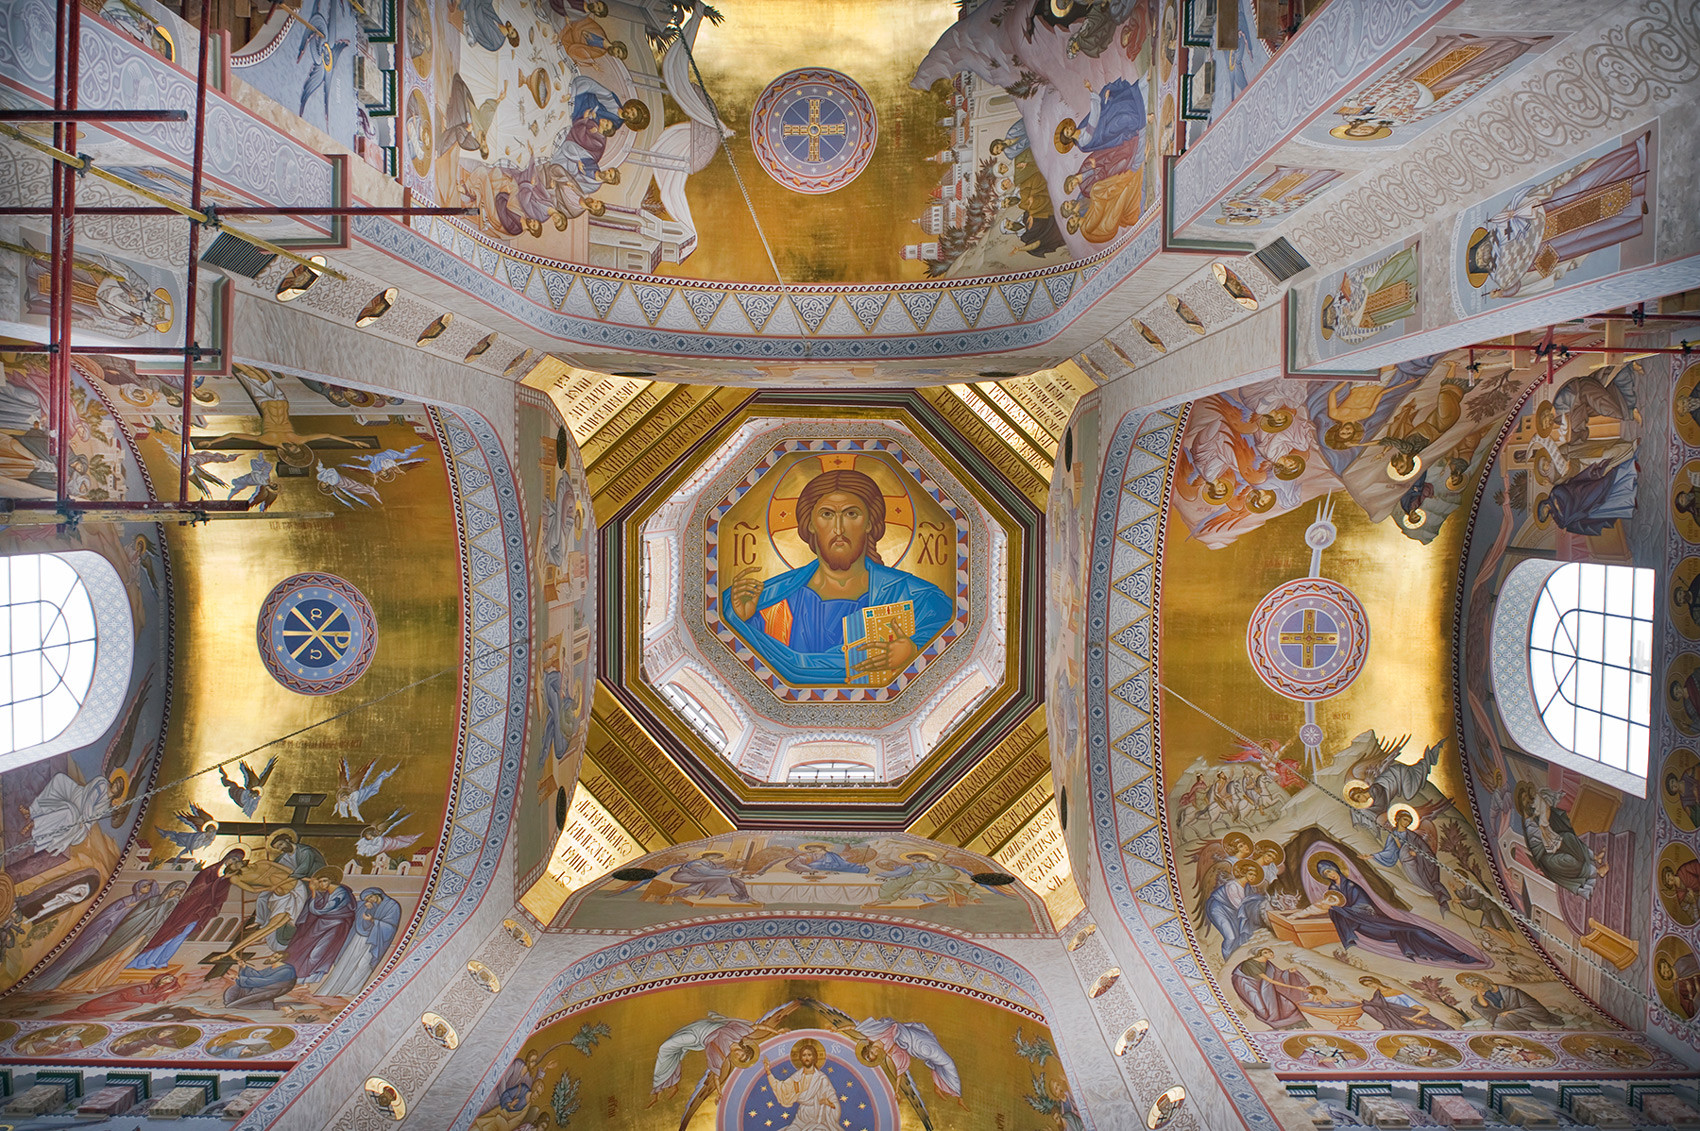 Church of All Saints Resplendent in the Russian Land. Interior with image of Christ Pantokrator in main dome. April 3, 2017.